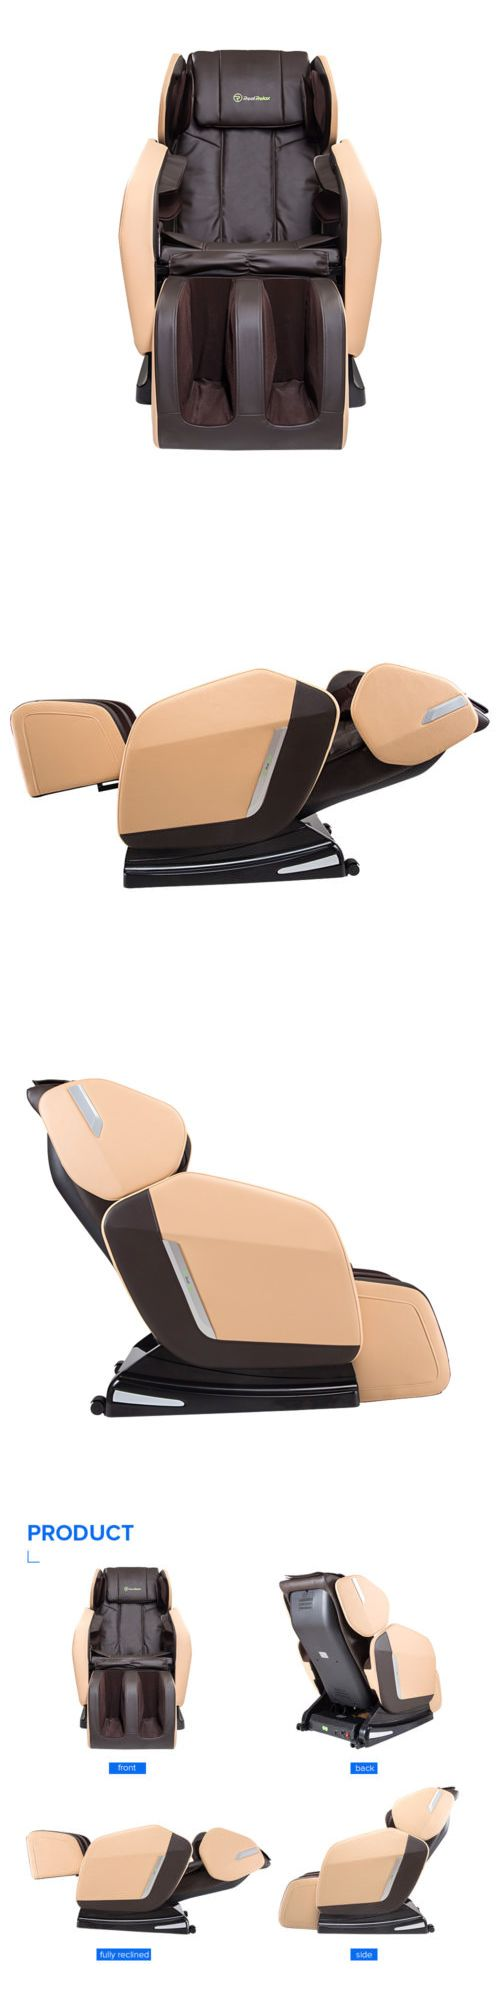 Electric Massage Chairs: Real Relax Full Body Shiatsu Massage Chair Recliner Zero Gravity Foot Roller BUY IT NOW ONLY: $597.0